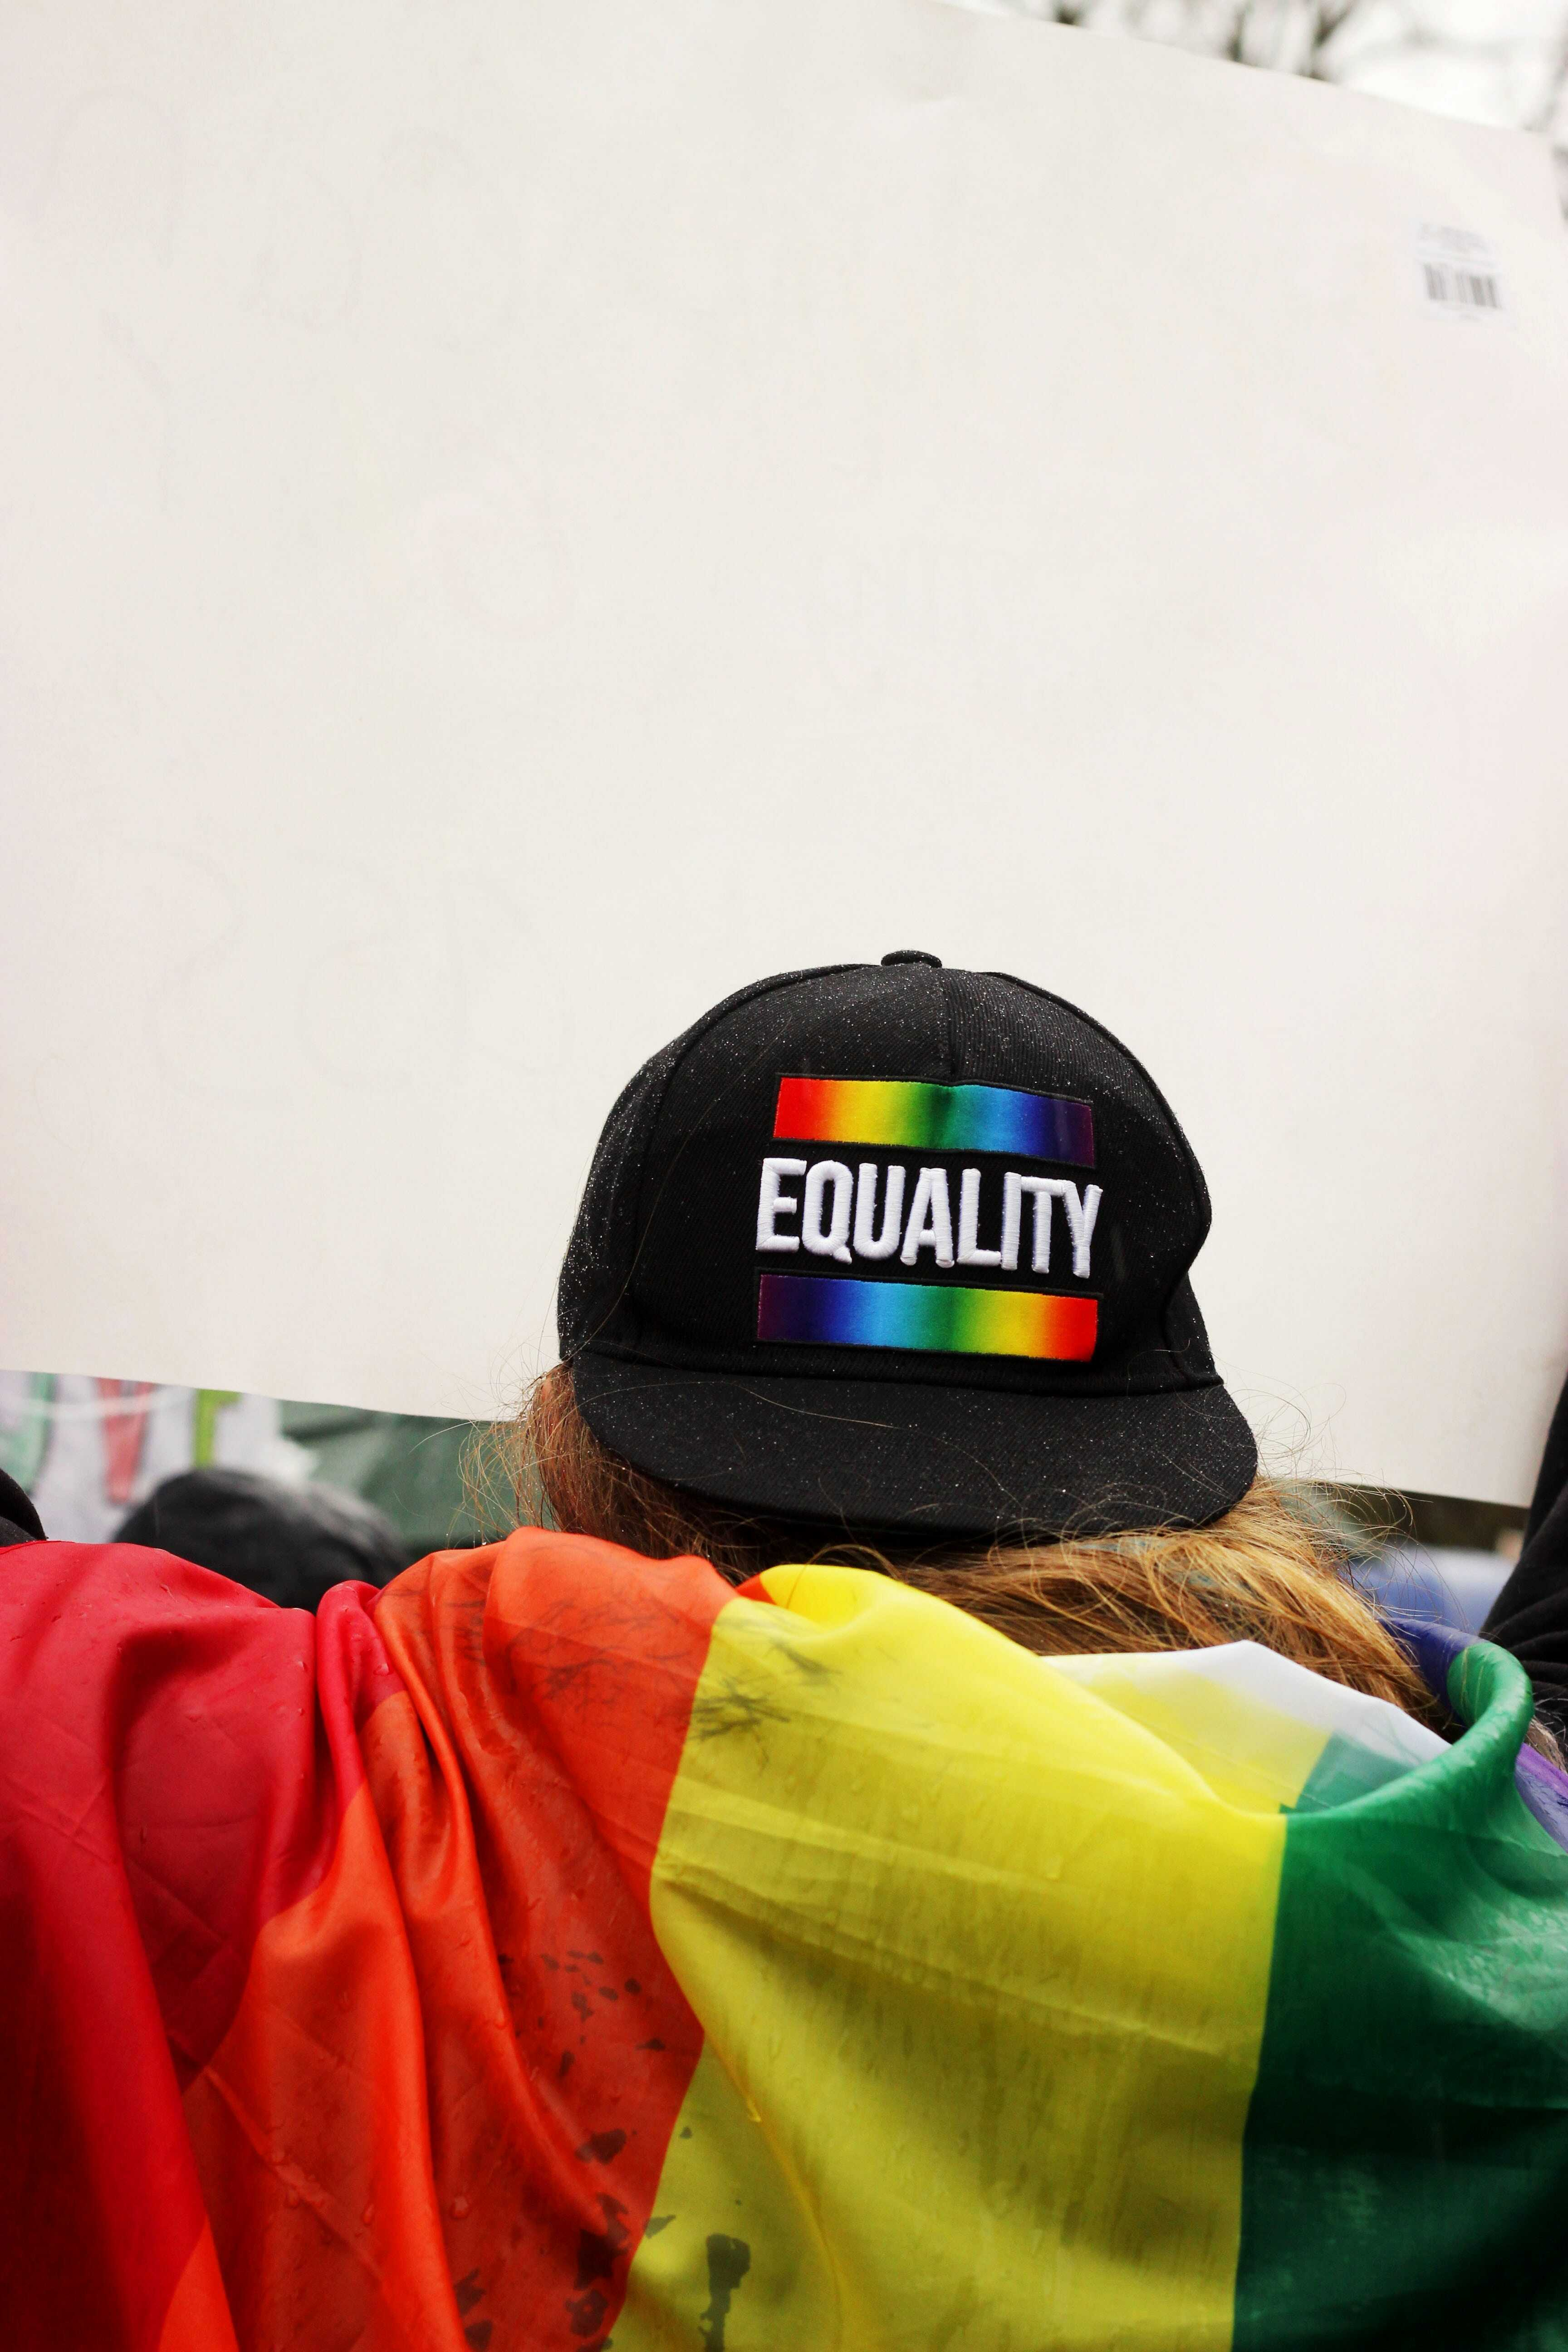 Person wearing equality hat and flag